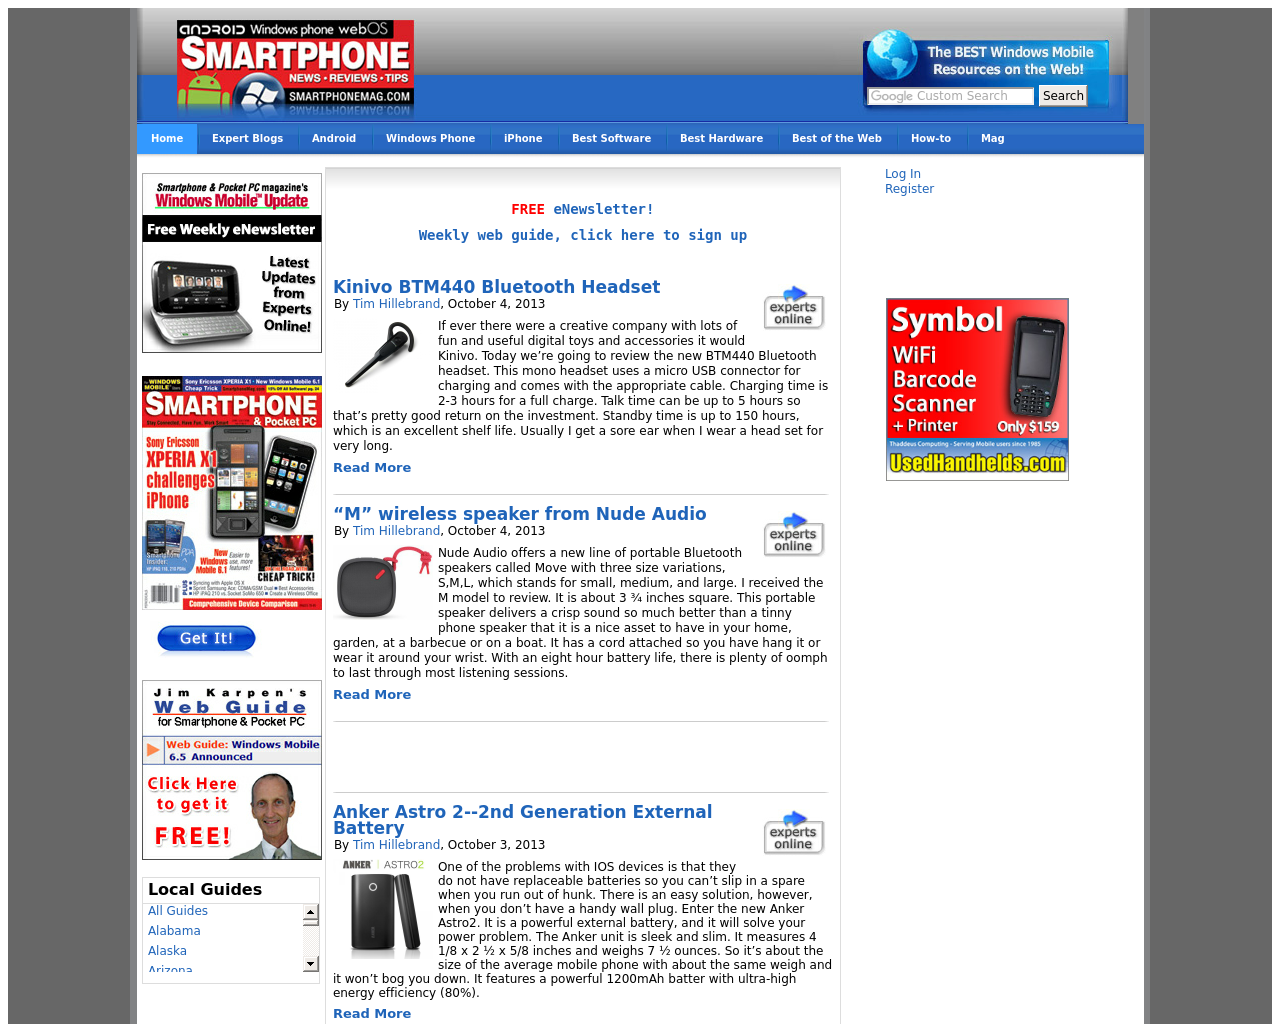 Smartphone-Advertising-Reviews-Pricing